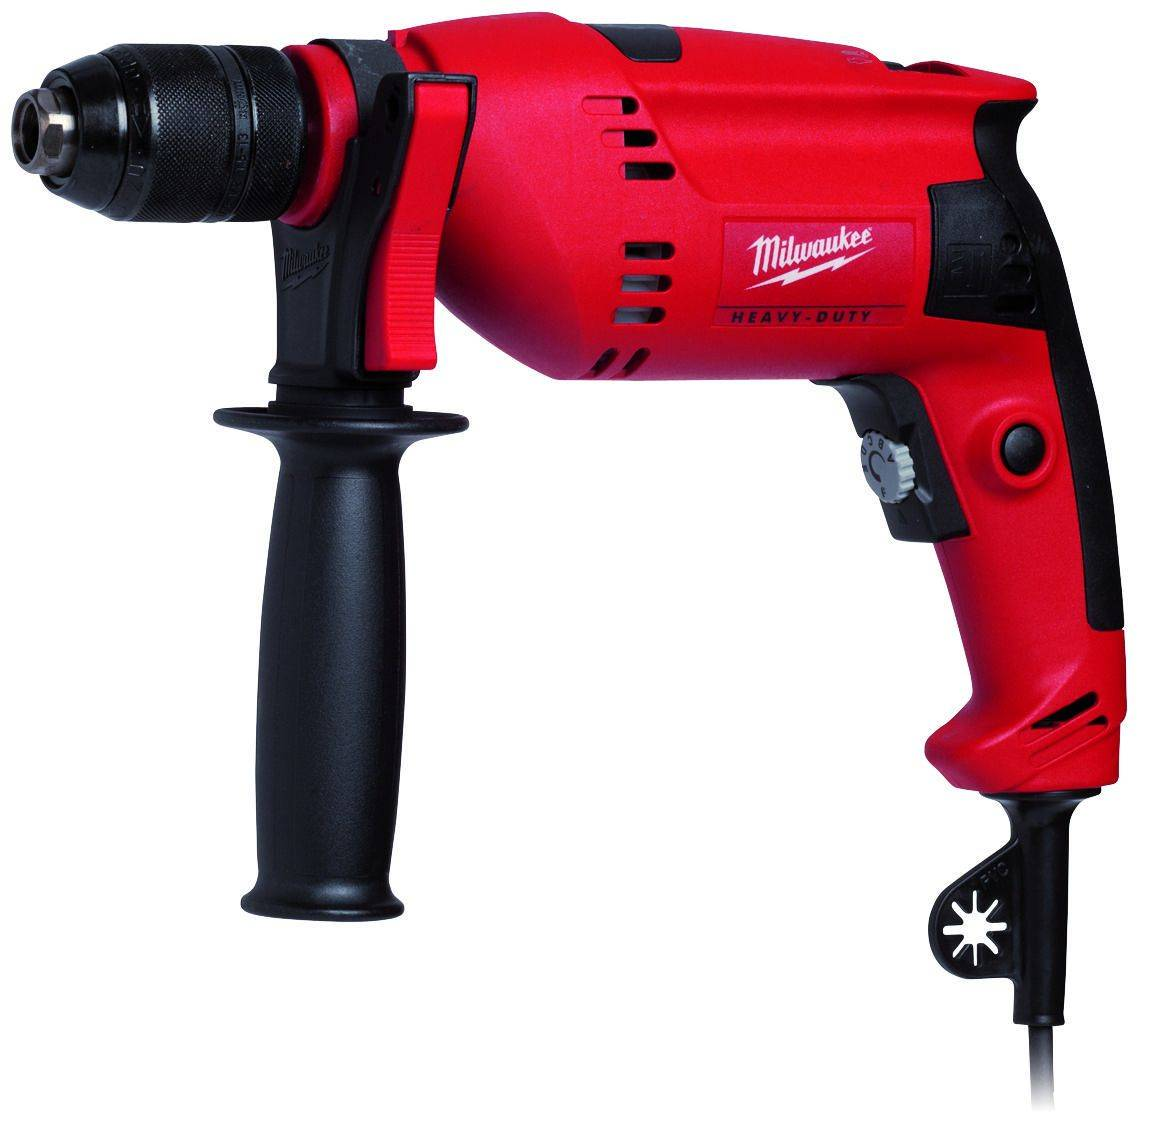 Milwaukee Perceuse visseuse DE 13 RP